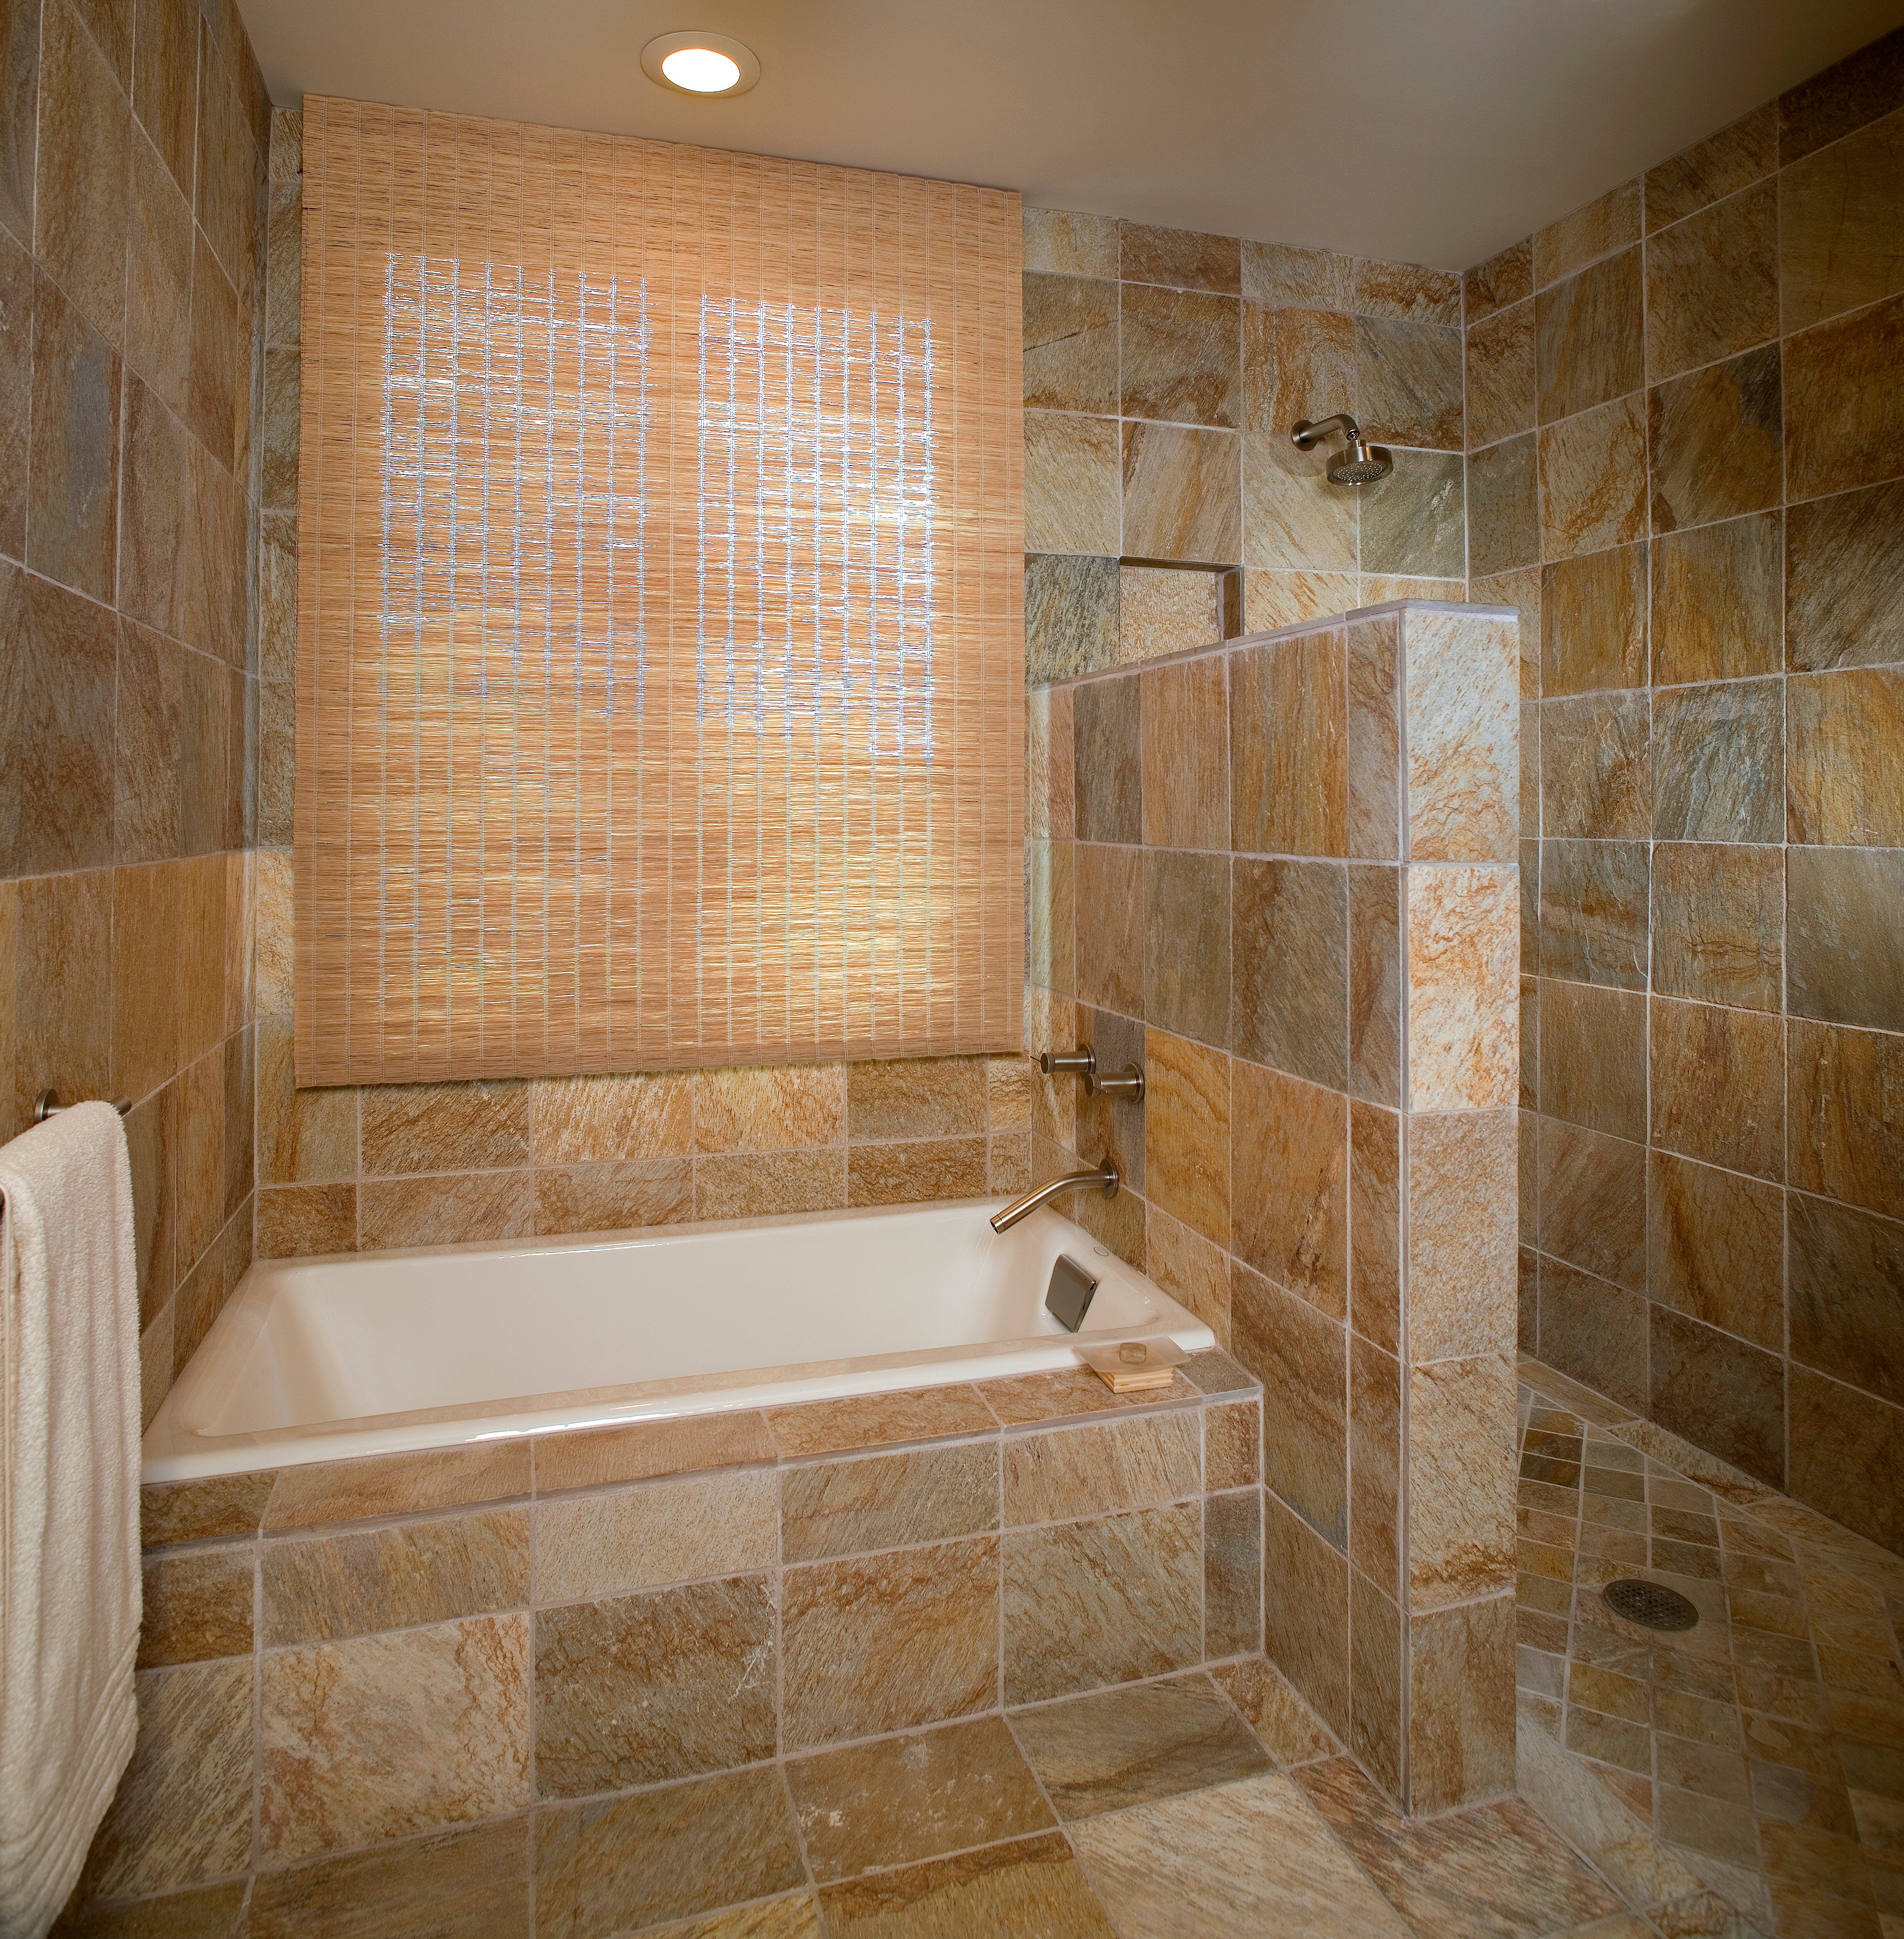 Where Does Your Money Go For A Bathroom Remodel HomeAdvisor - Bathroom renovation videos